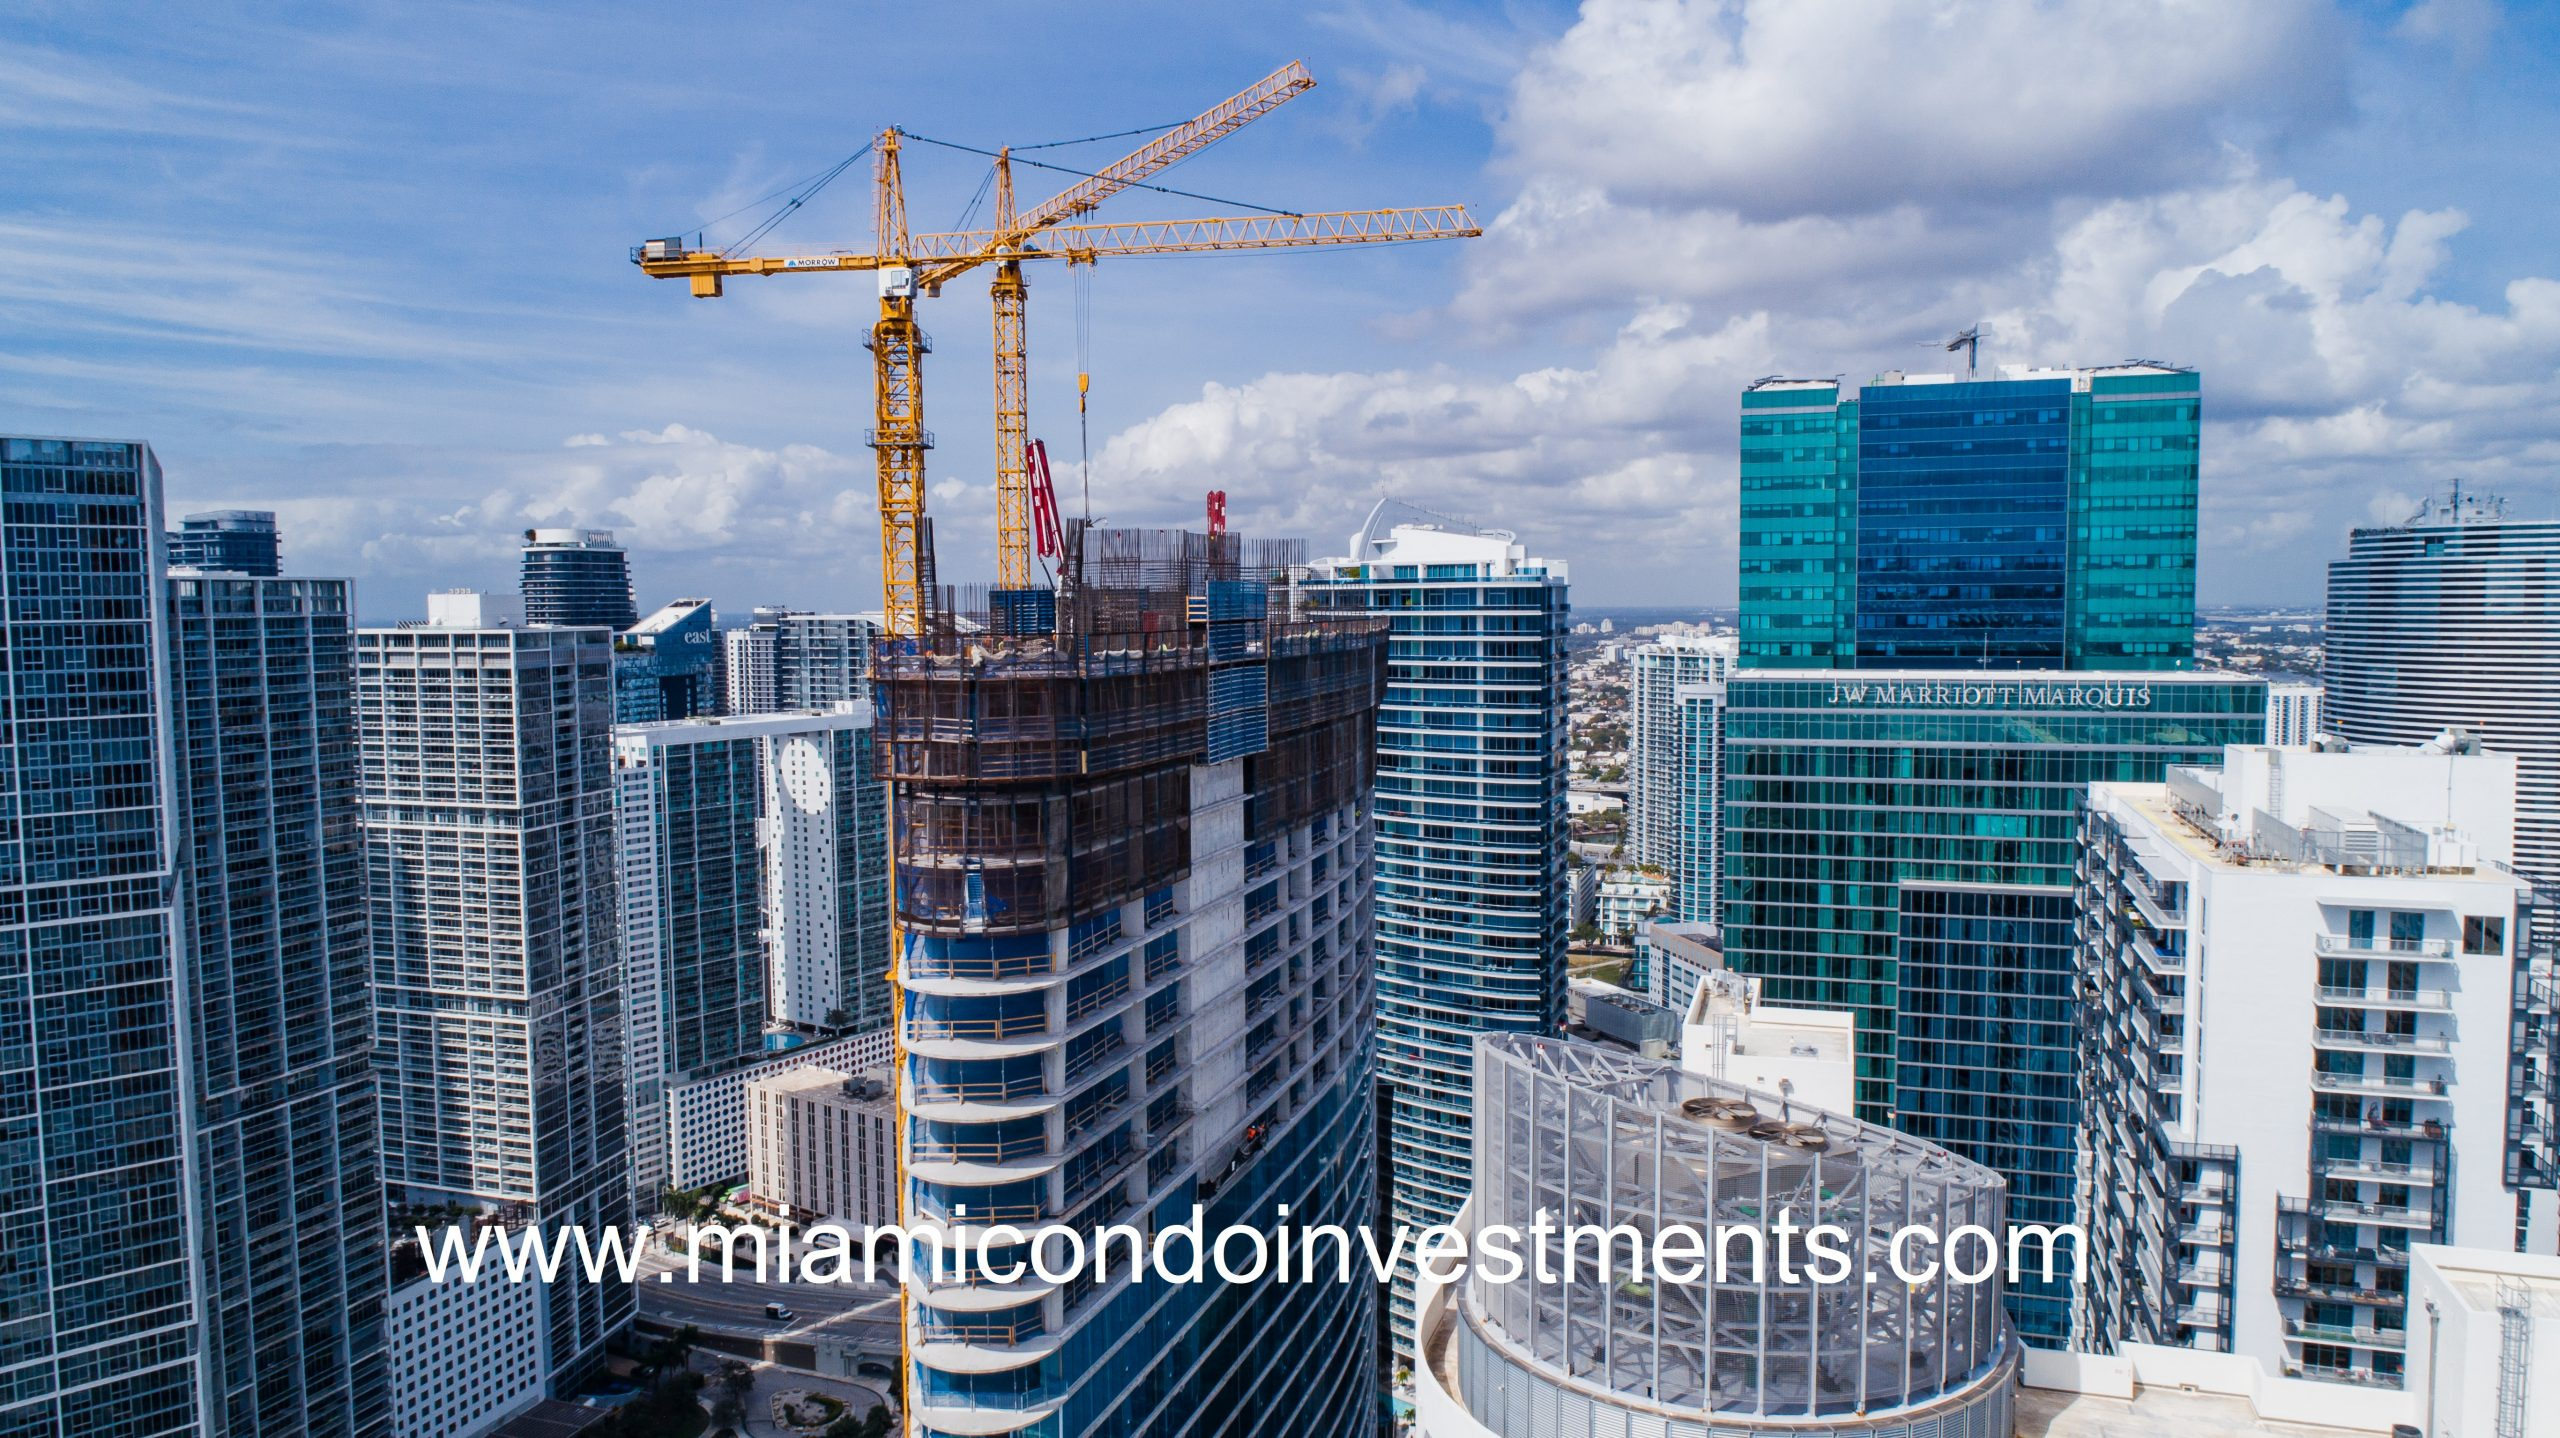 Aston Martin Residences Tower View from the Top